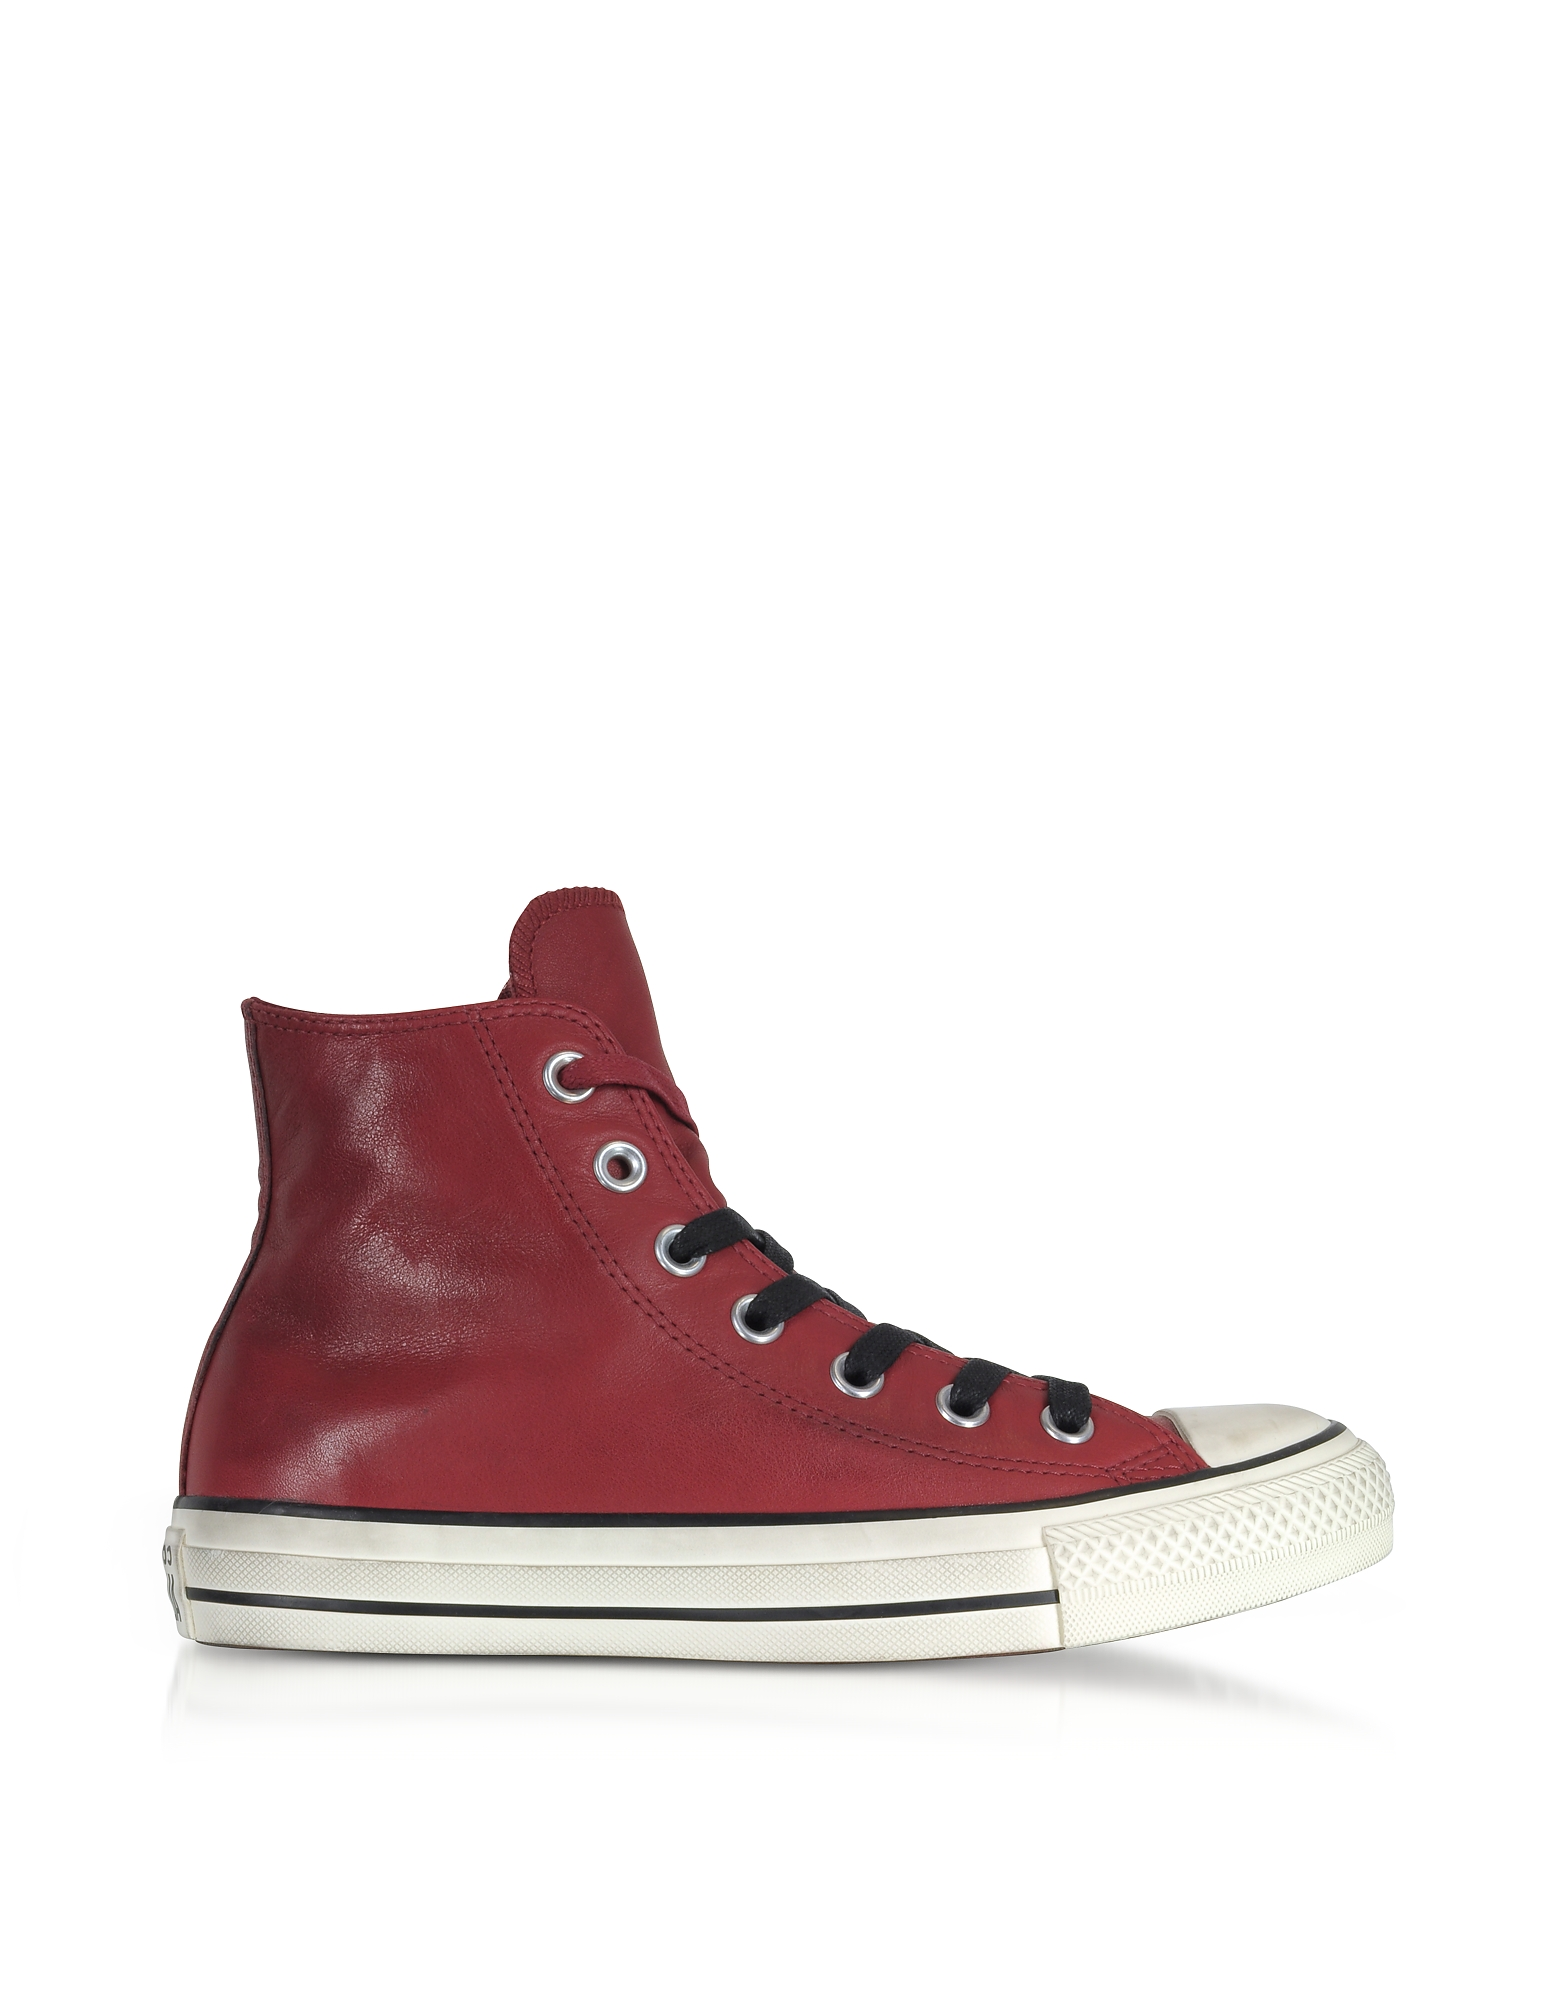 Chuck Taylor All Star High Distressed Leather Men's Sneakers